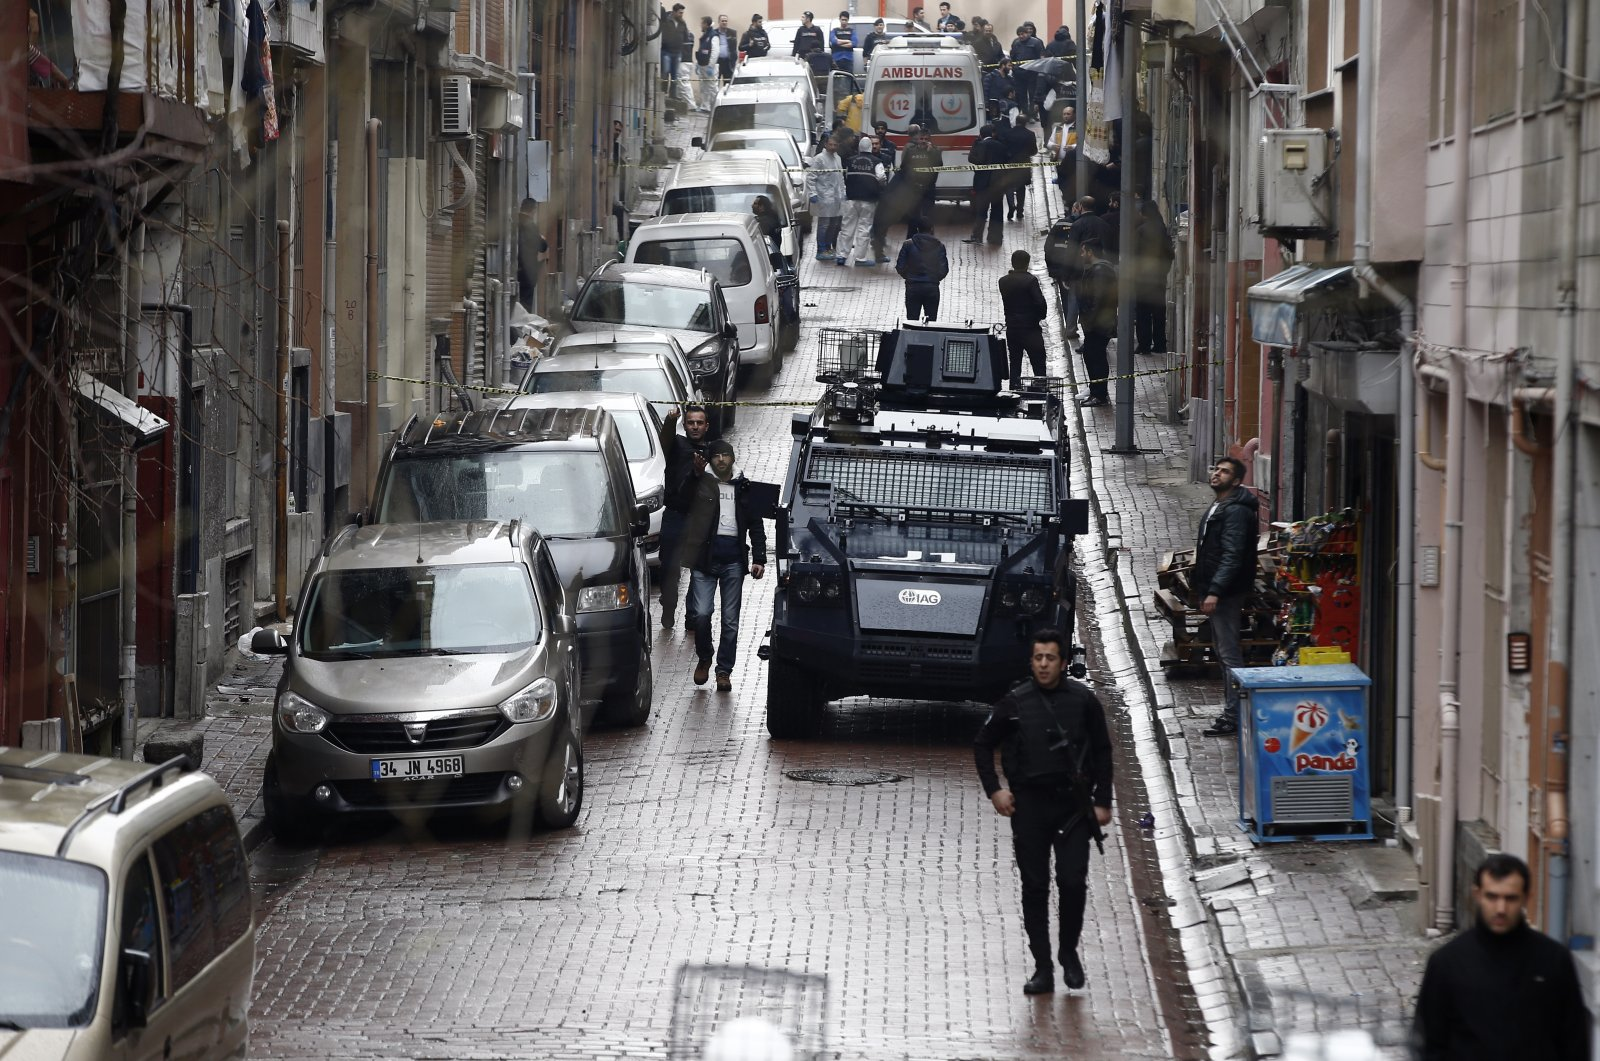 Security forces surround the area during an operation against two attackers, in Bayrampaşa neighborhood in Istanbul, March 3, 2016. (AP File Photo)